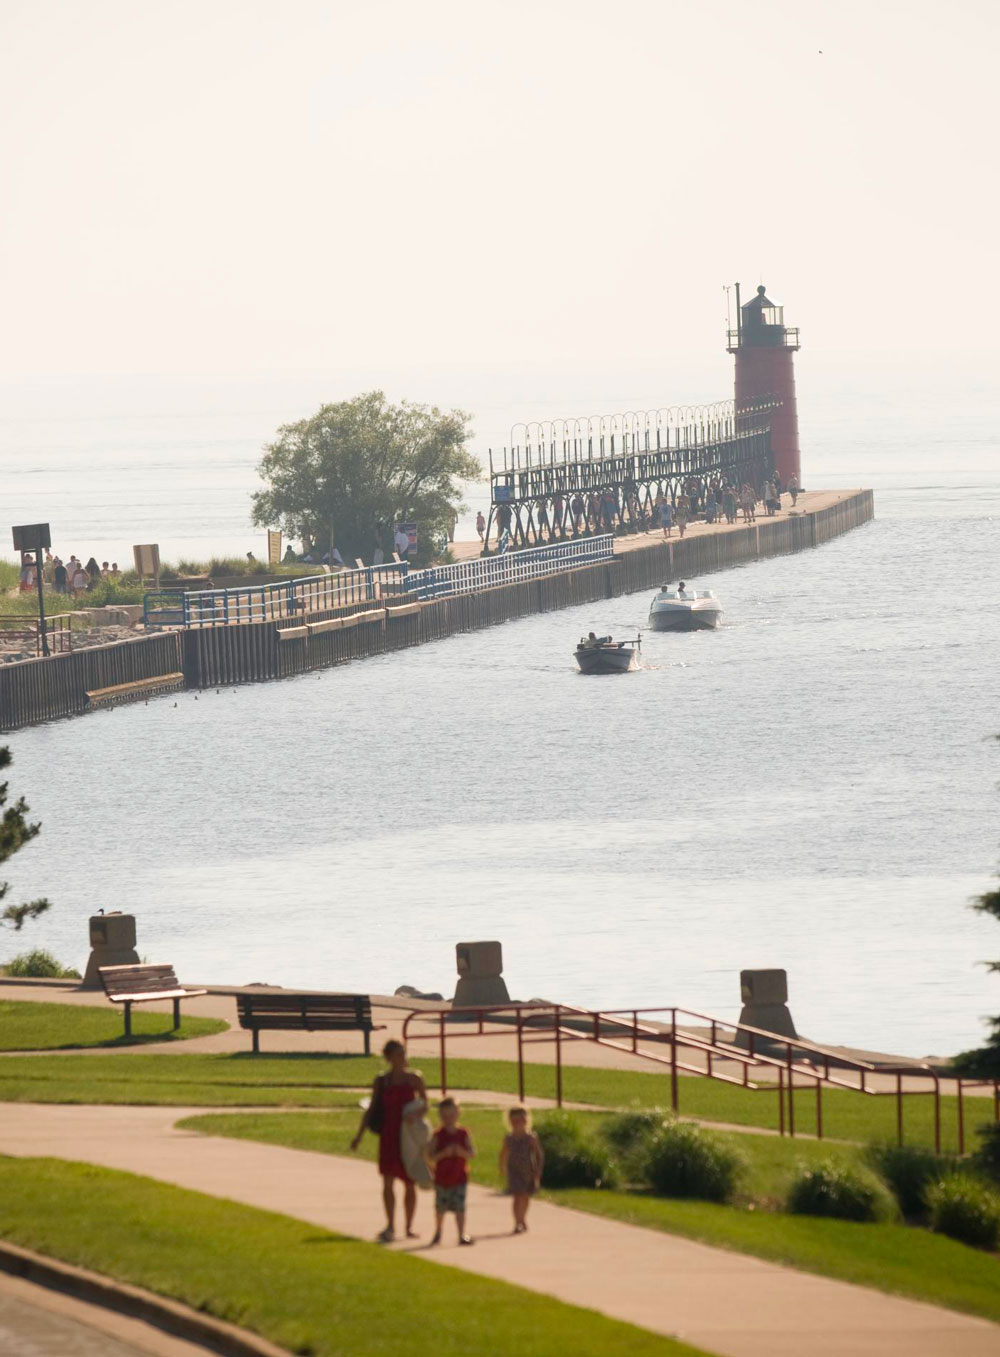 Cool community in South Haven, Michigan